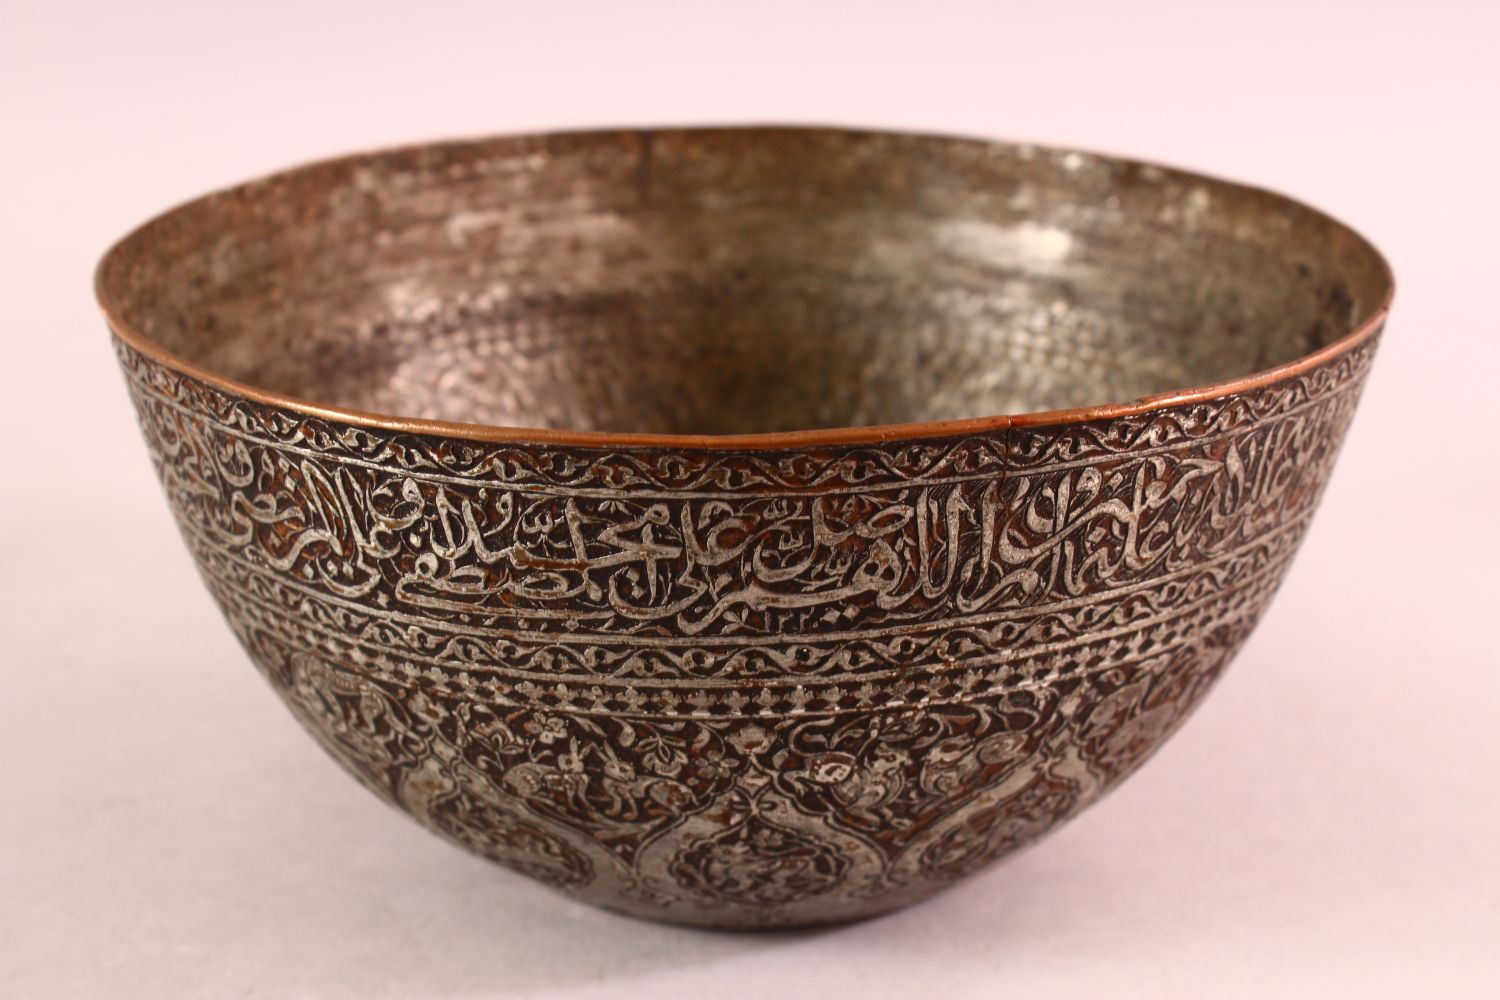 A GOOD ZANDI TINNED COPPER ENGRAVED CALLIGRAPHIC BOWL, with bands of calligraphy, 19cm diameter, - Image 4 of 6